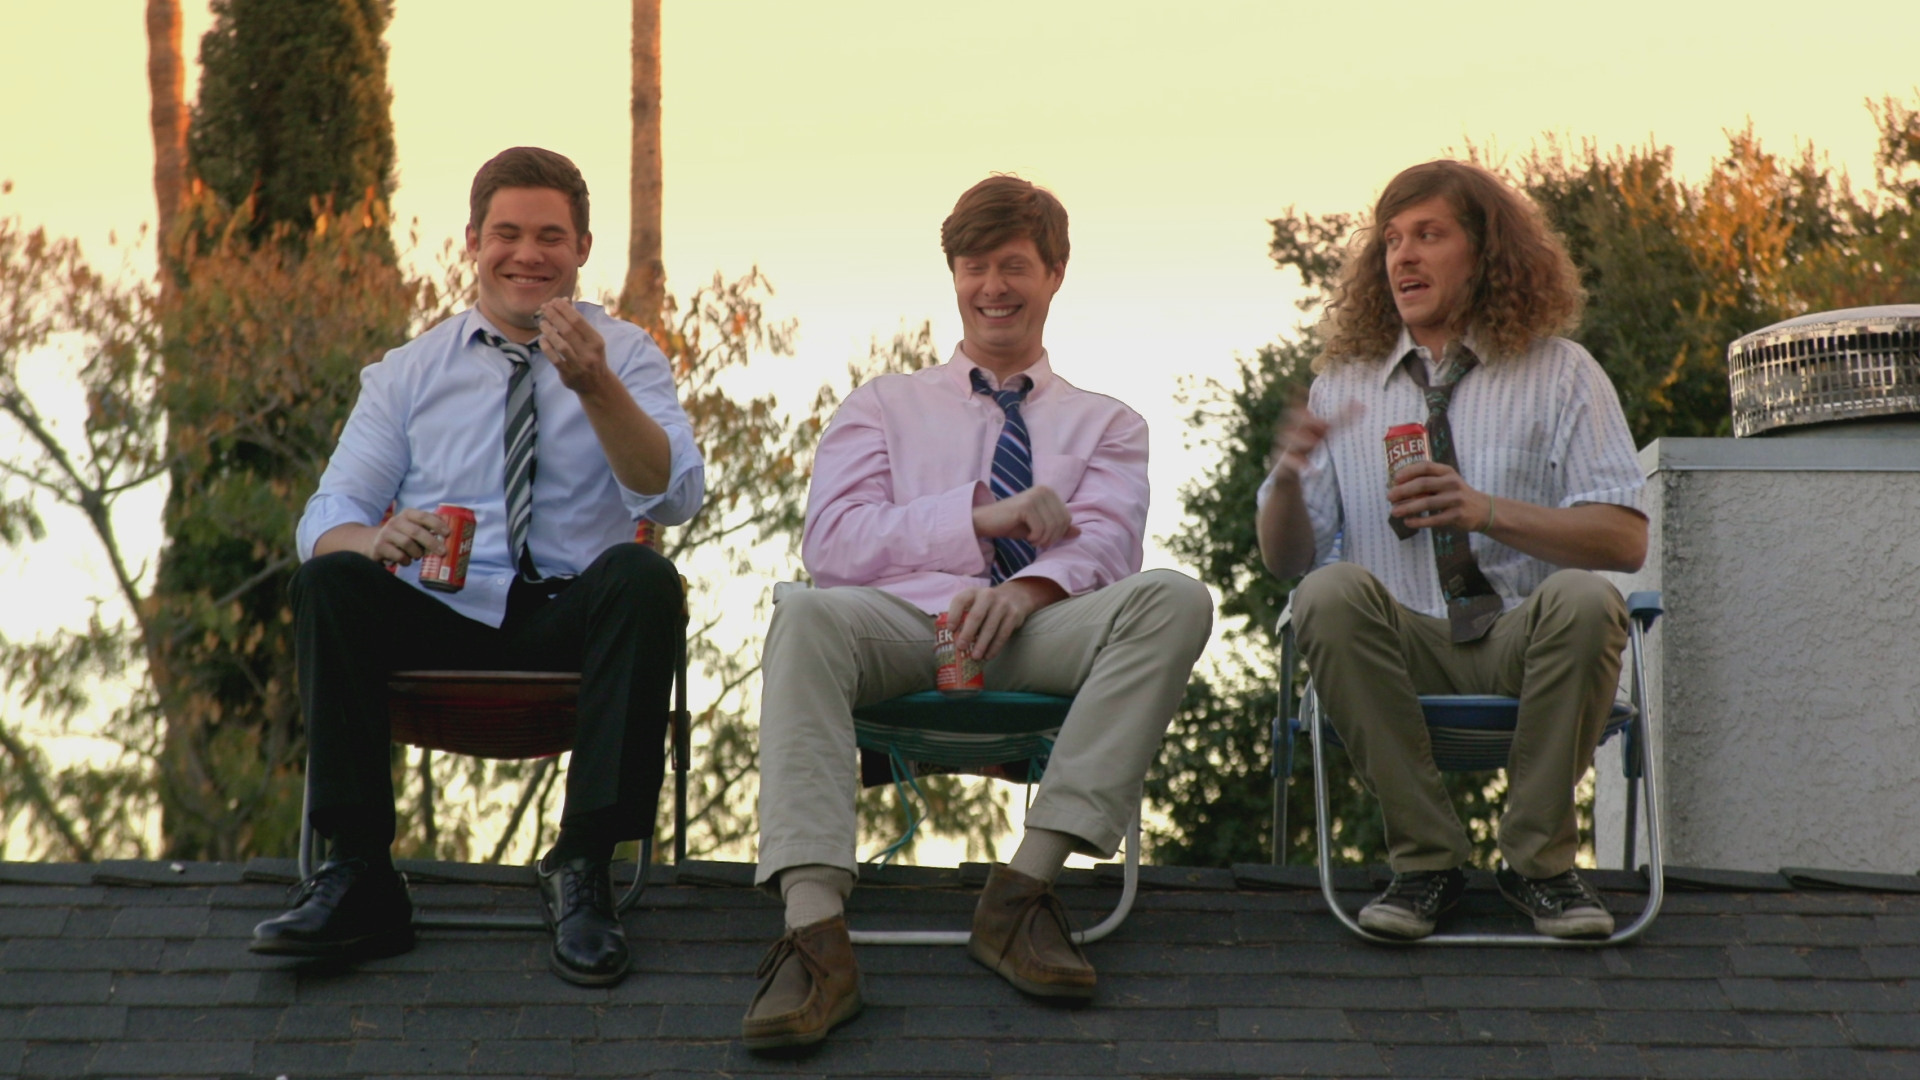 STILL GETTING WEIRD. STILL BEING GUYS. - WORKAHOLICS: CATCH UP ON THE BROMANCE